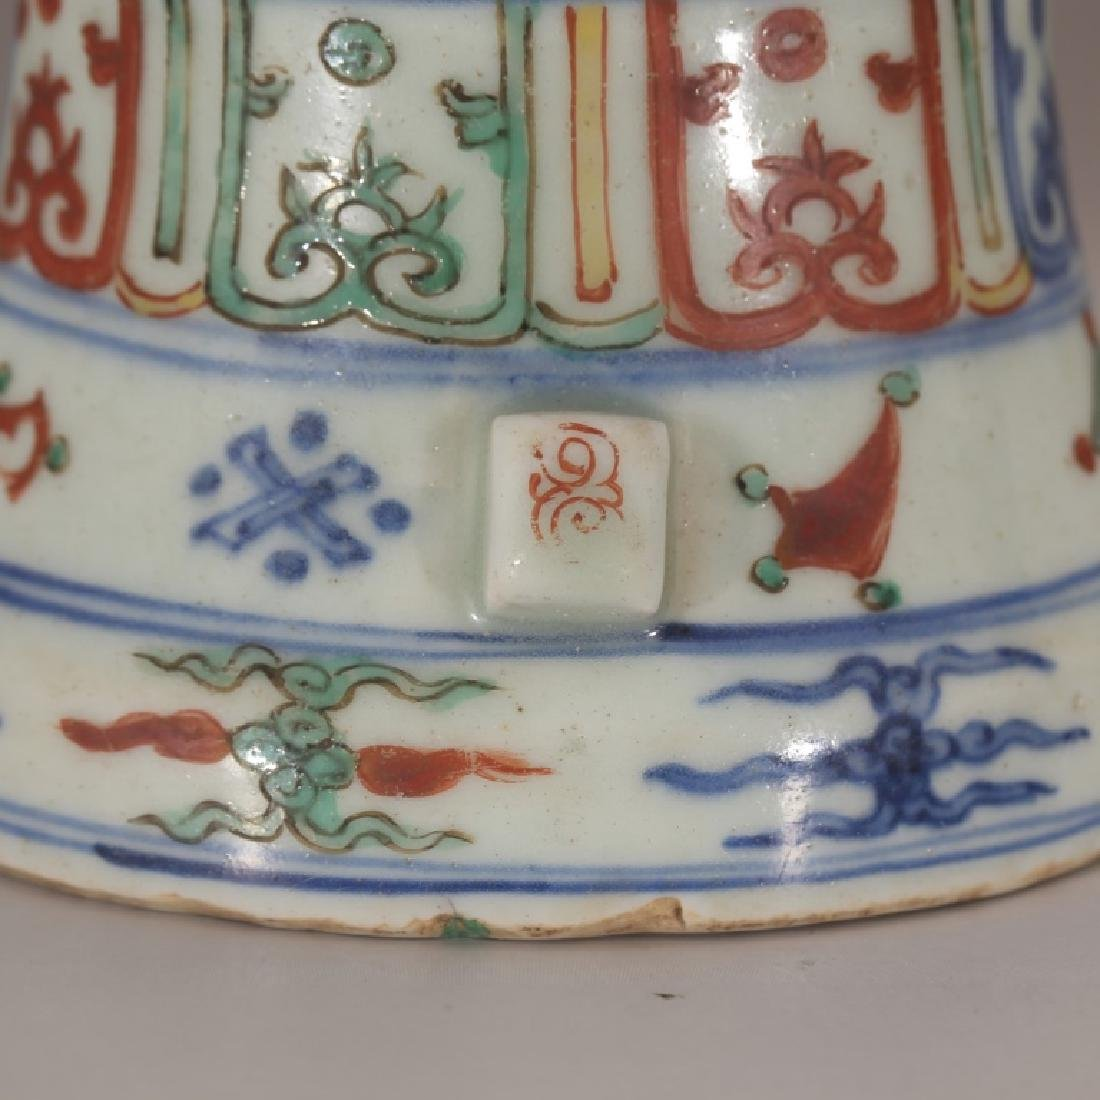 Chinese Qing Dynasty Archaic Wucai Porcelain Vase - 7